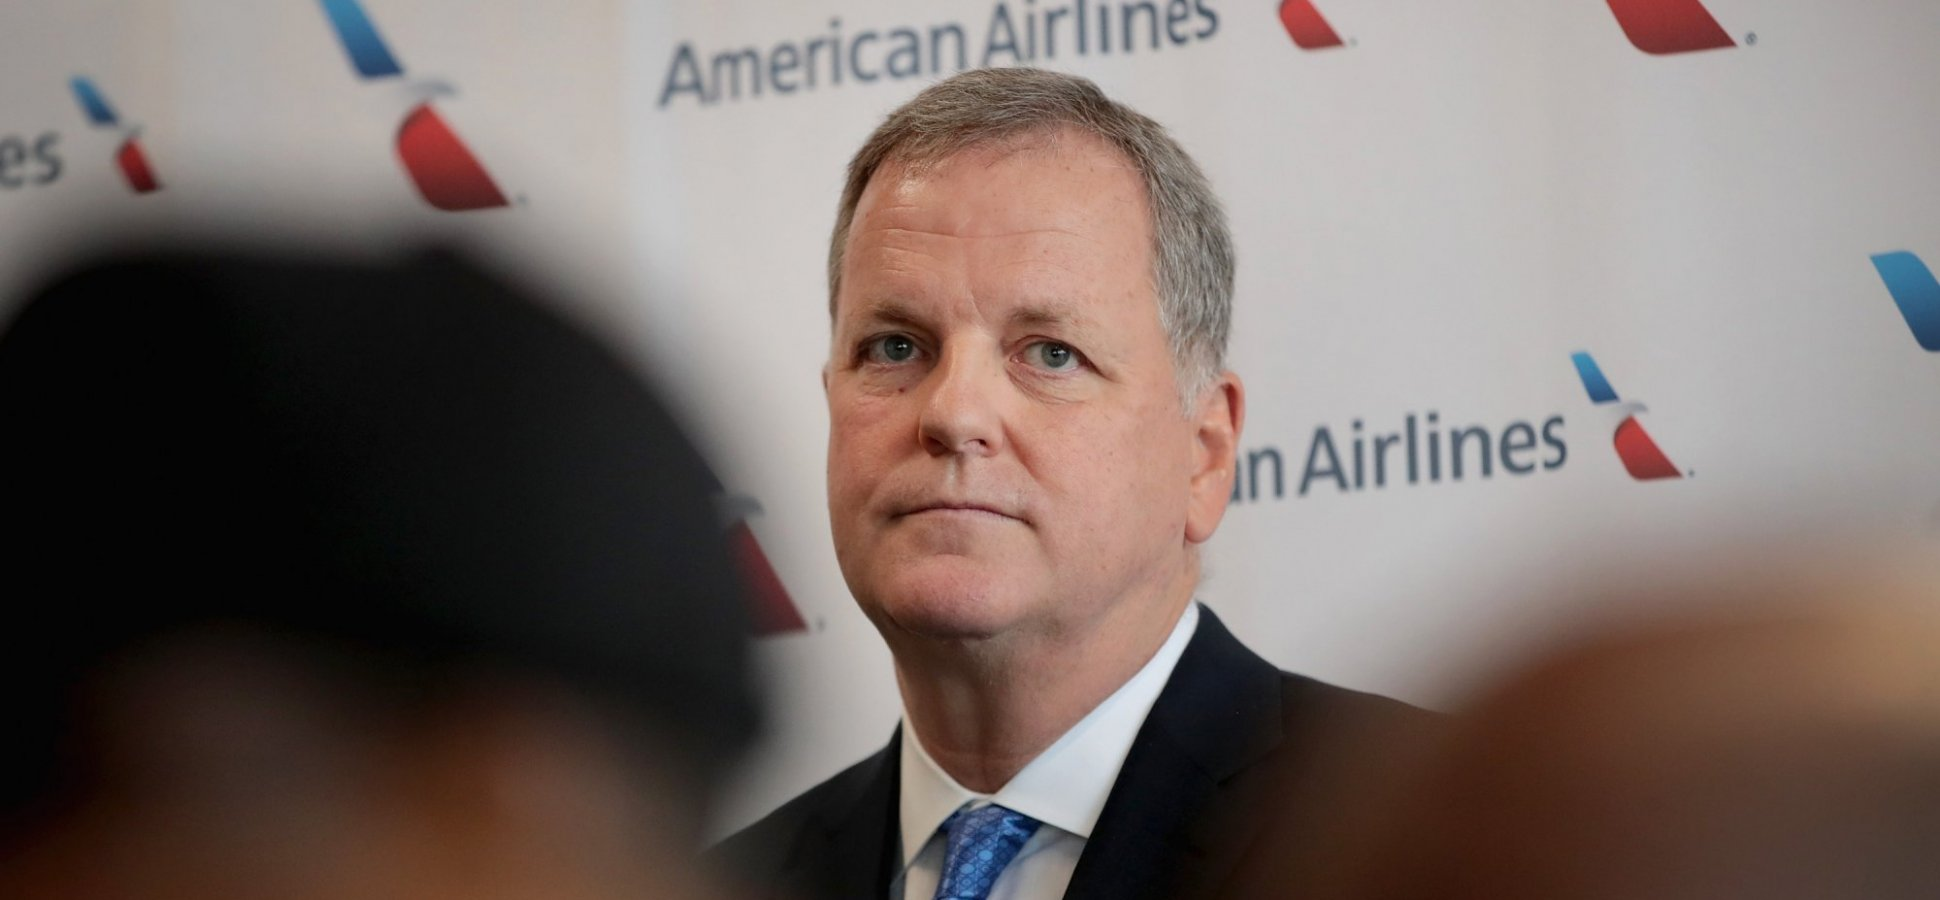 The CEO Of American Airlines Just Made An Extraordinary Admission About the Boeing 737 MAX. It Won't Reassure Passengers